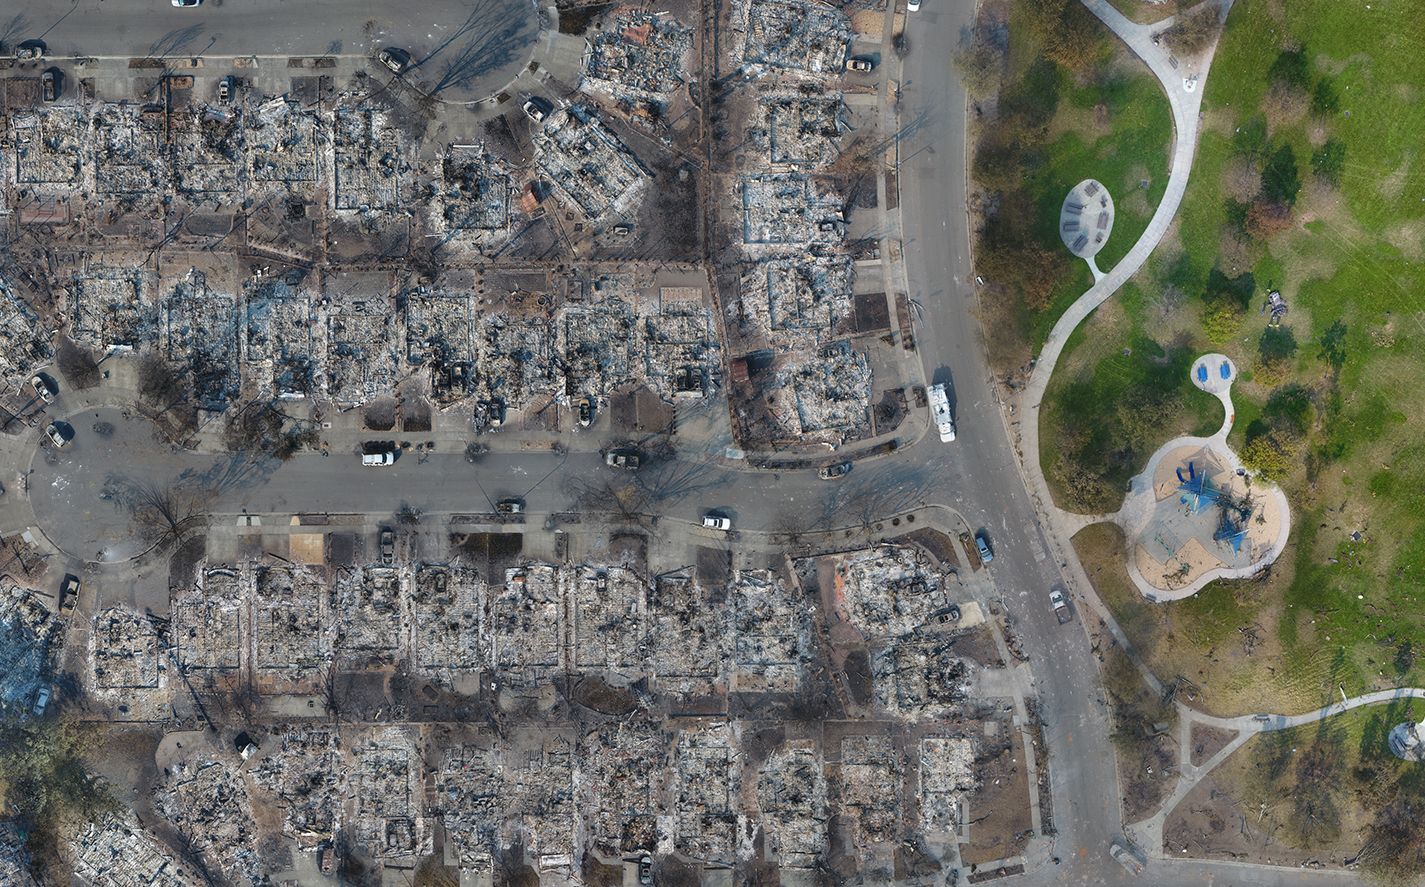 Aerial photography was used to create the map of Coffey Park after Santa Rosa Fire Storm